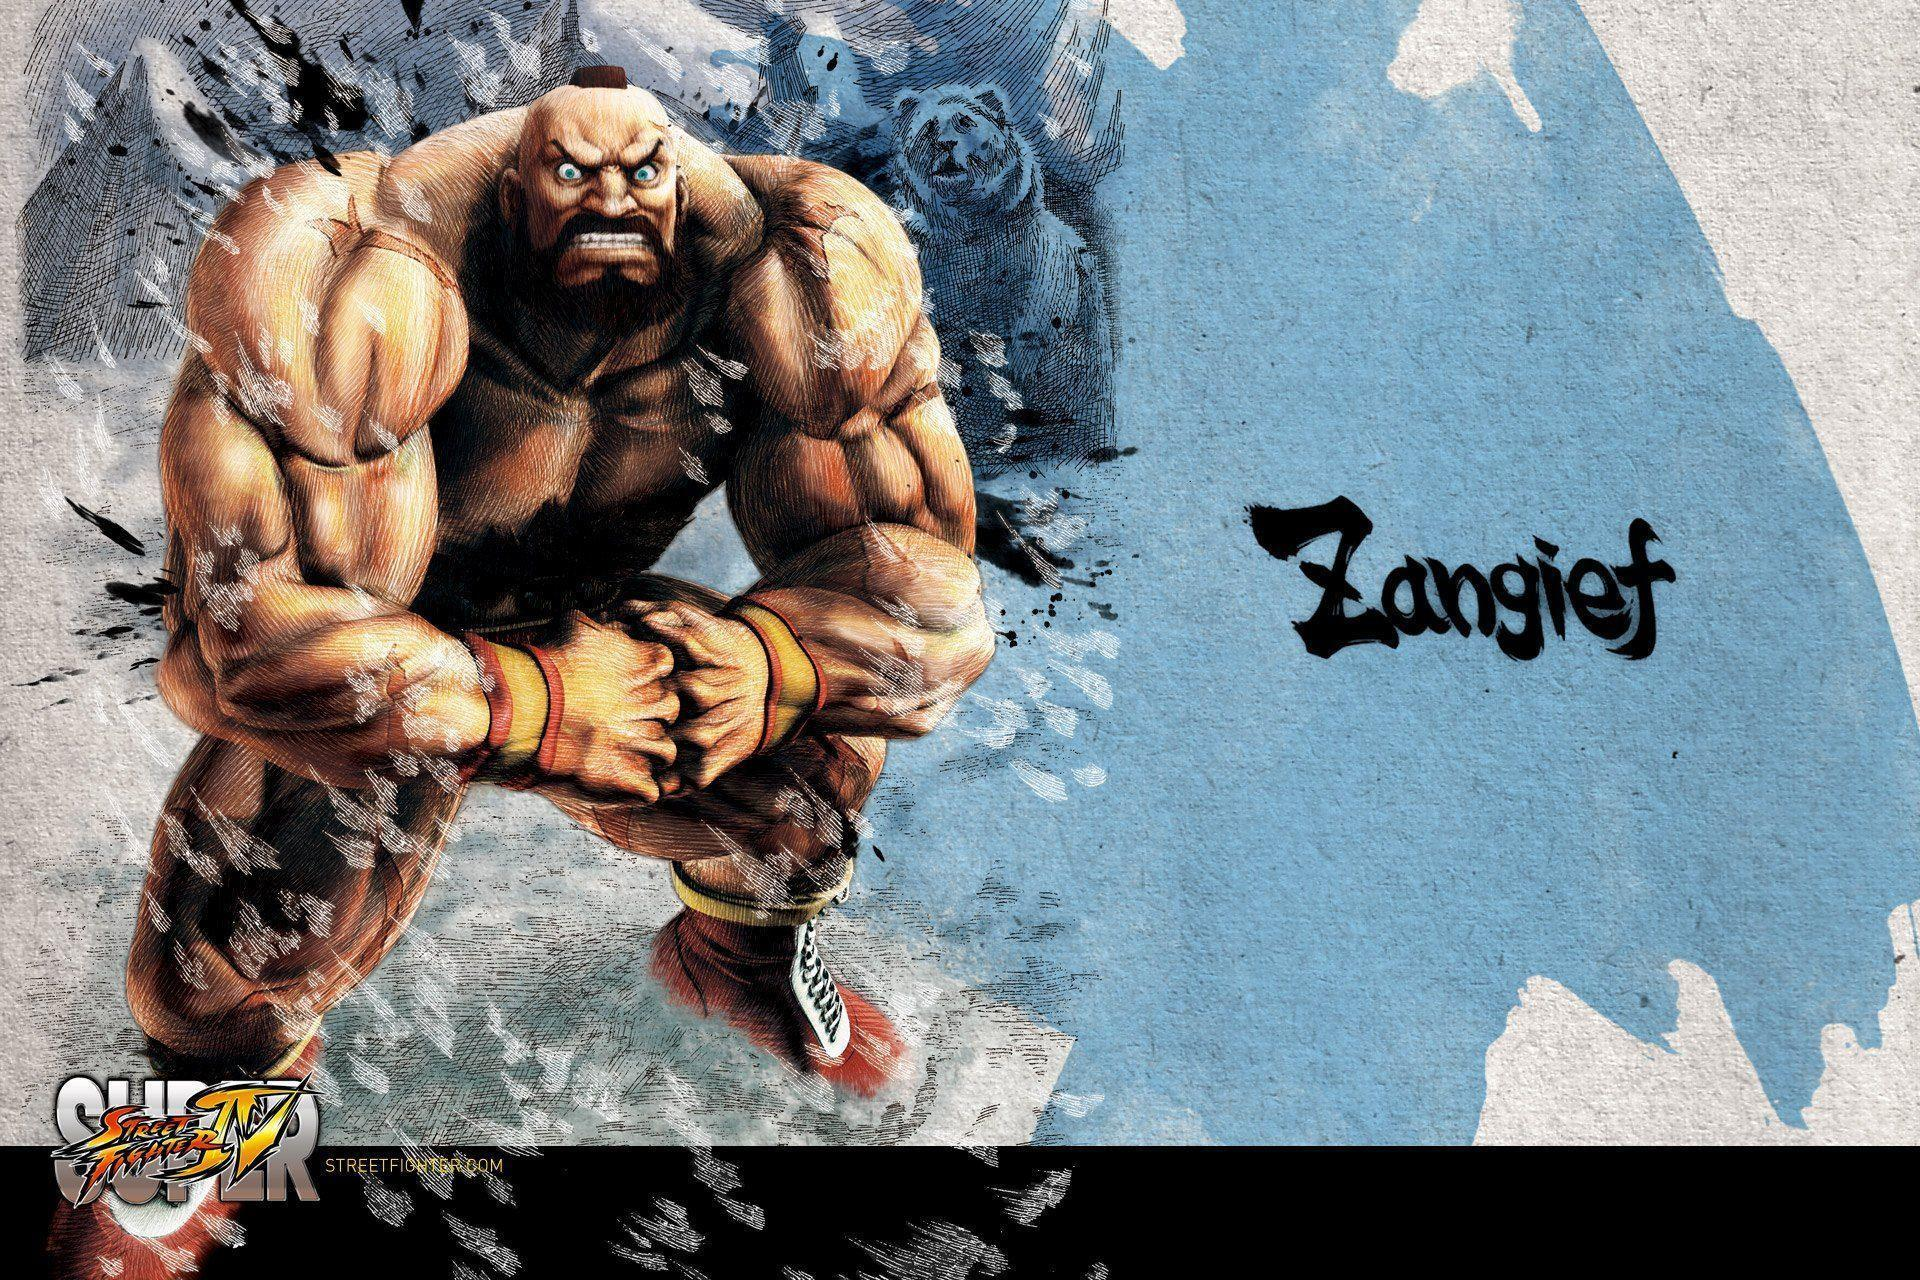 Street Fighter 4 Wallpapers: Super Street Fighter 4 Wallpapers